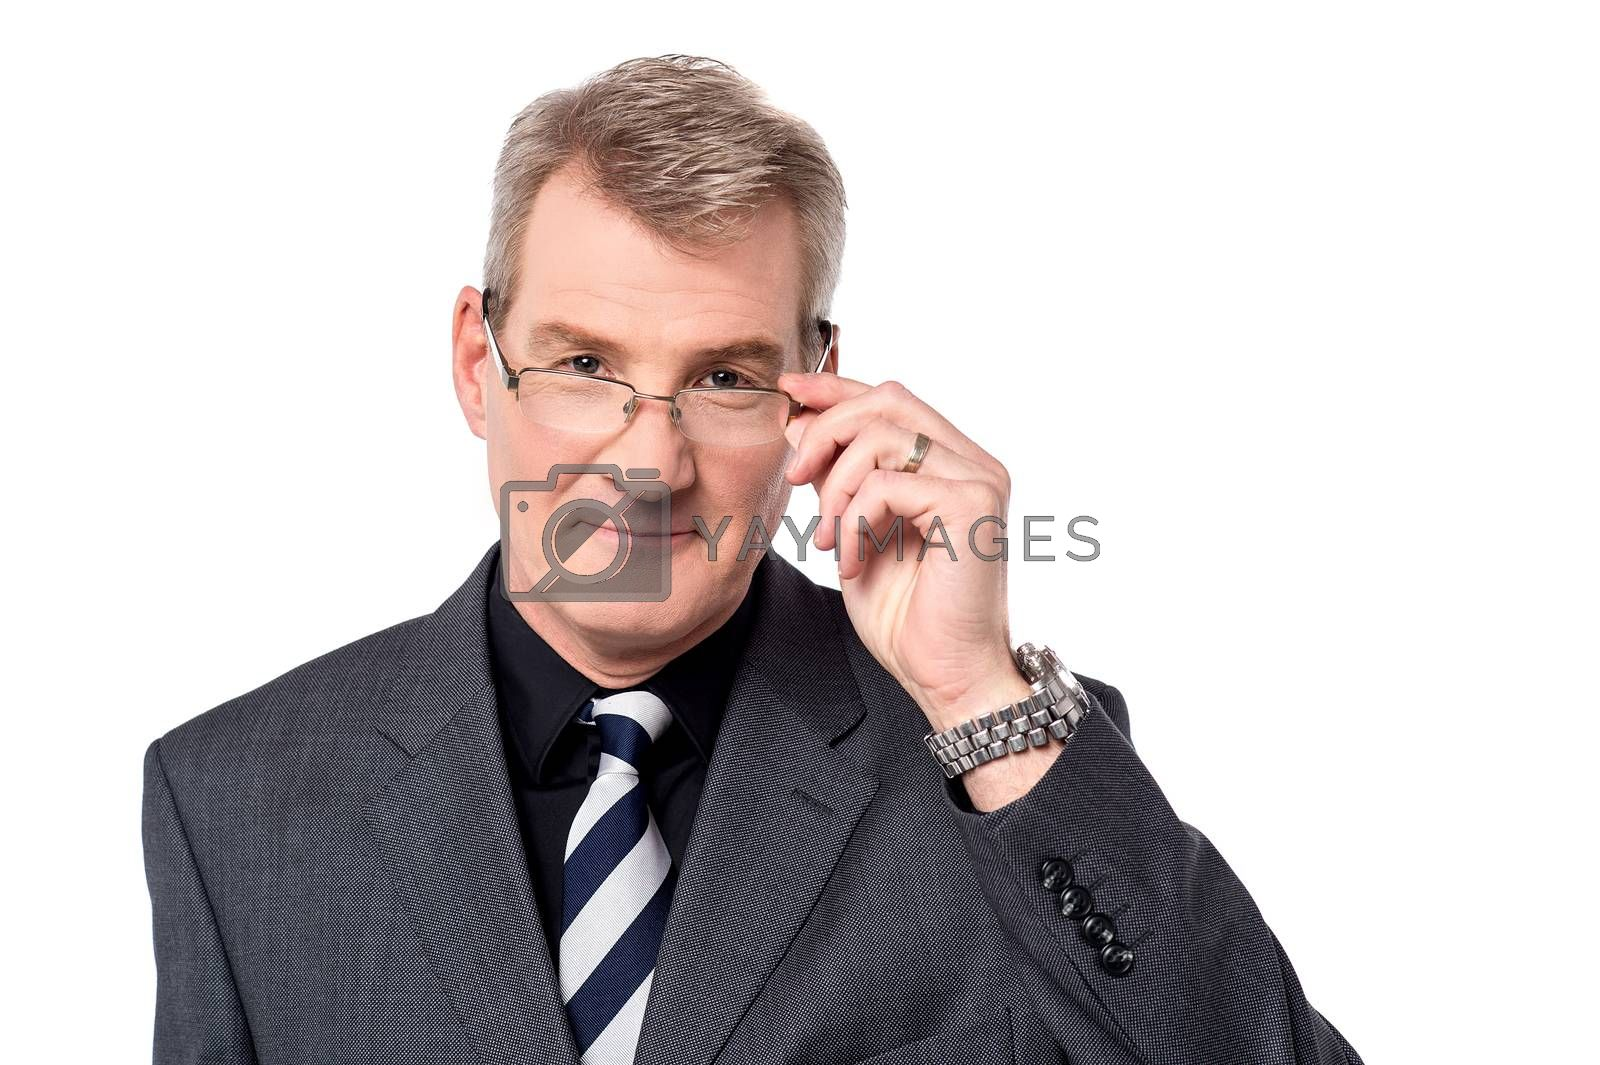 Business person adjusting his eyeglasses